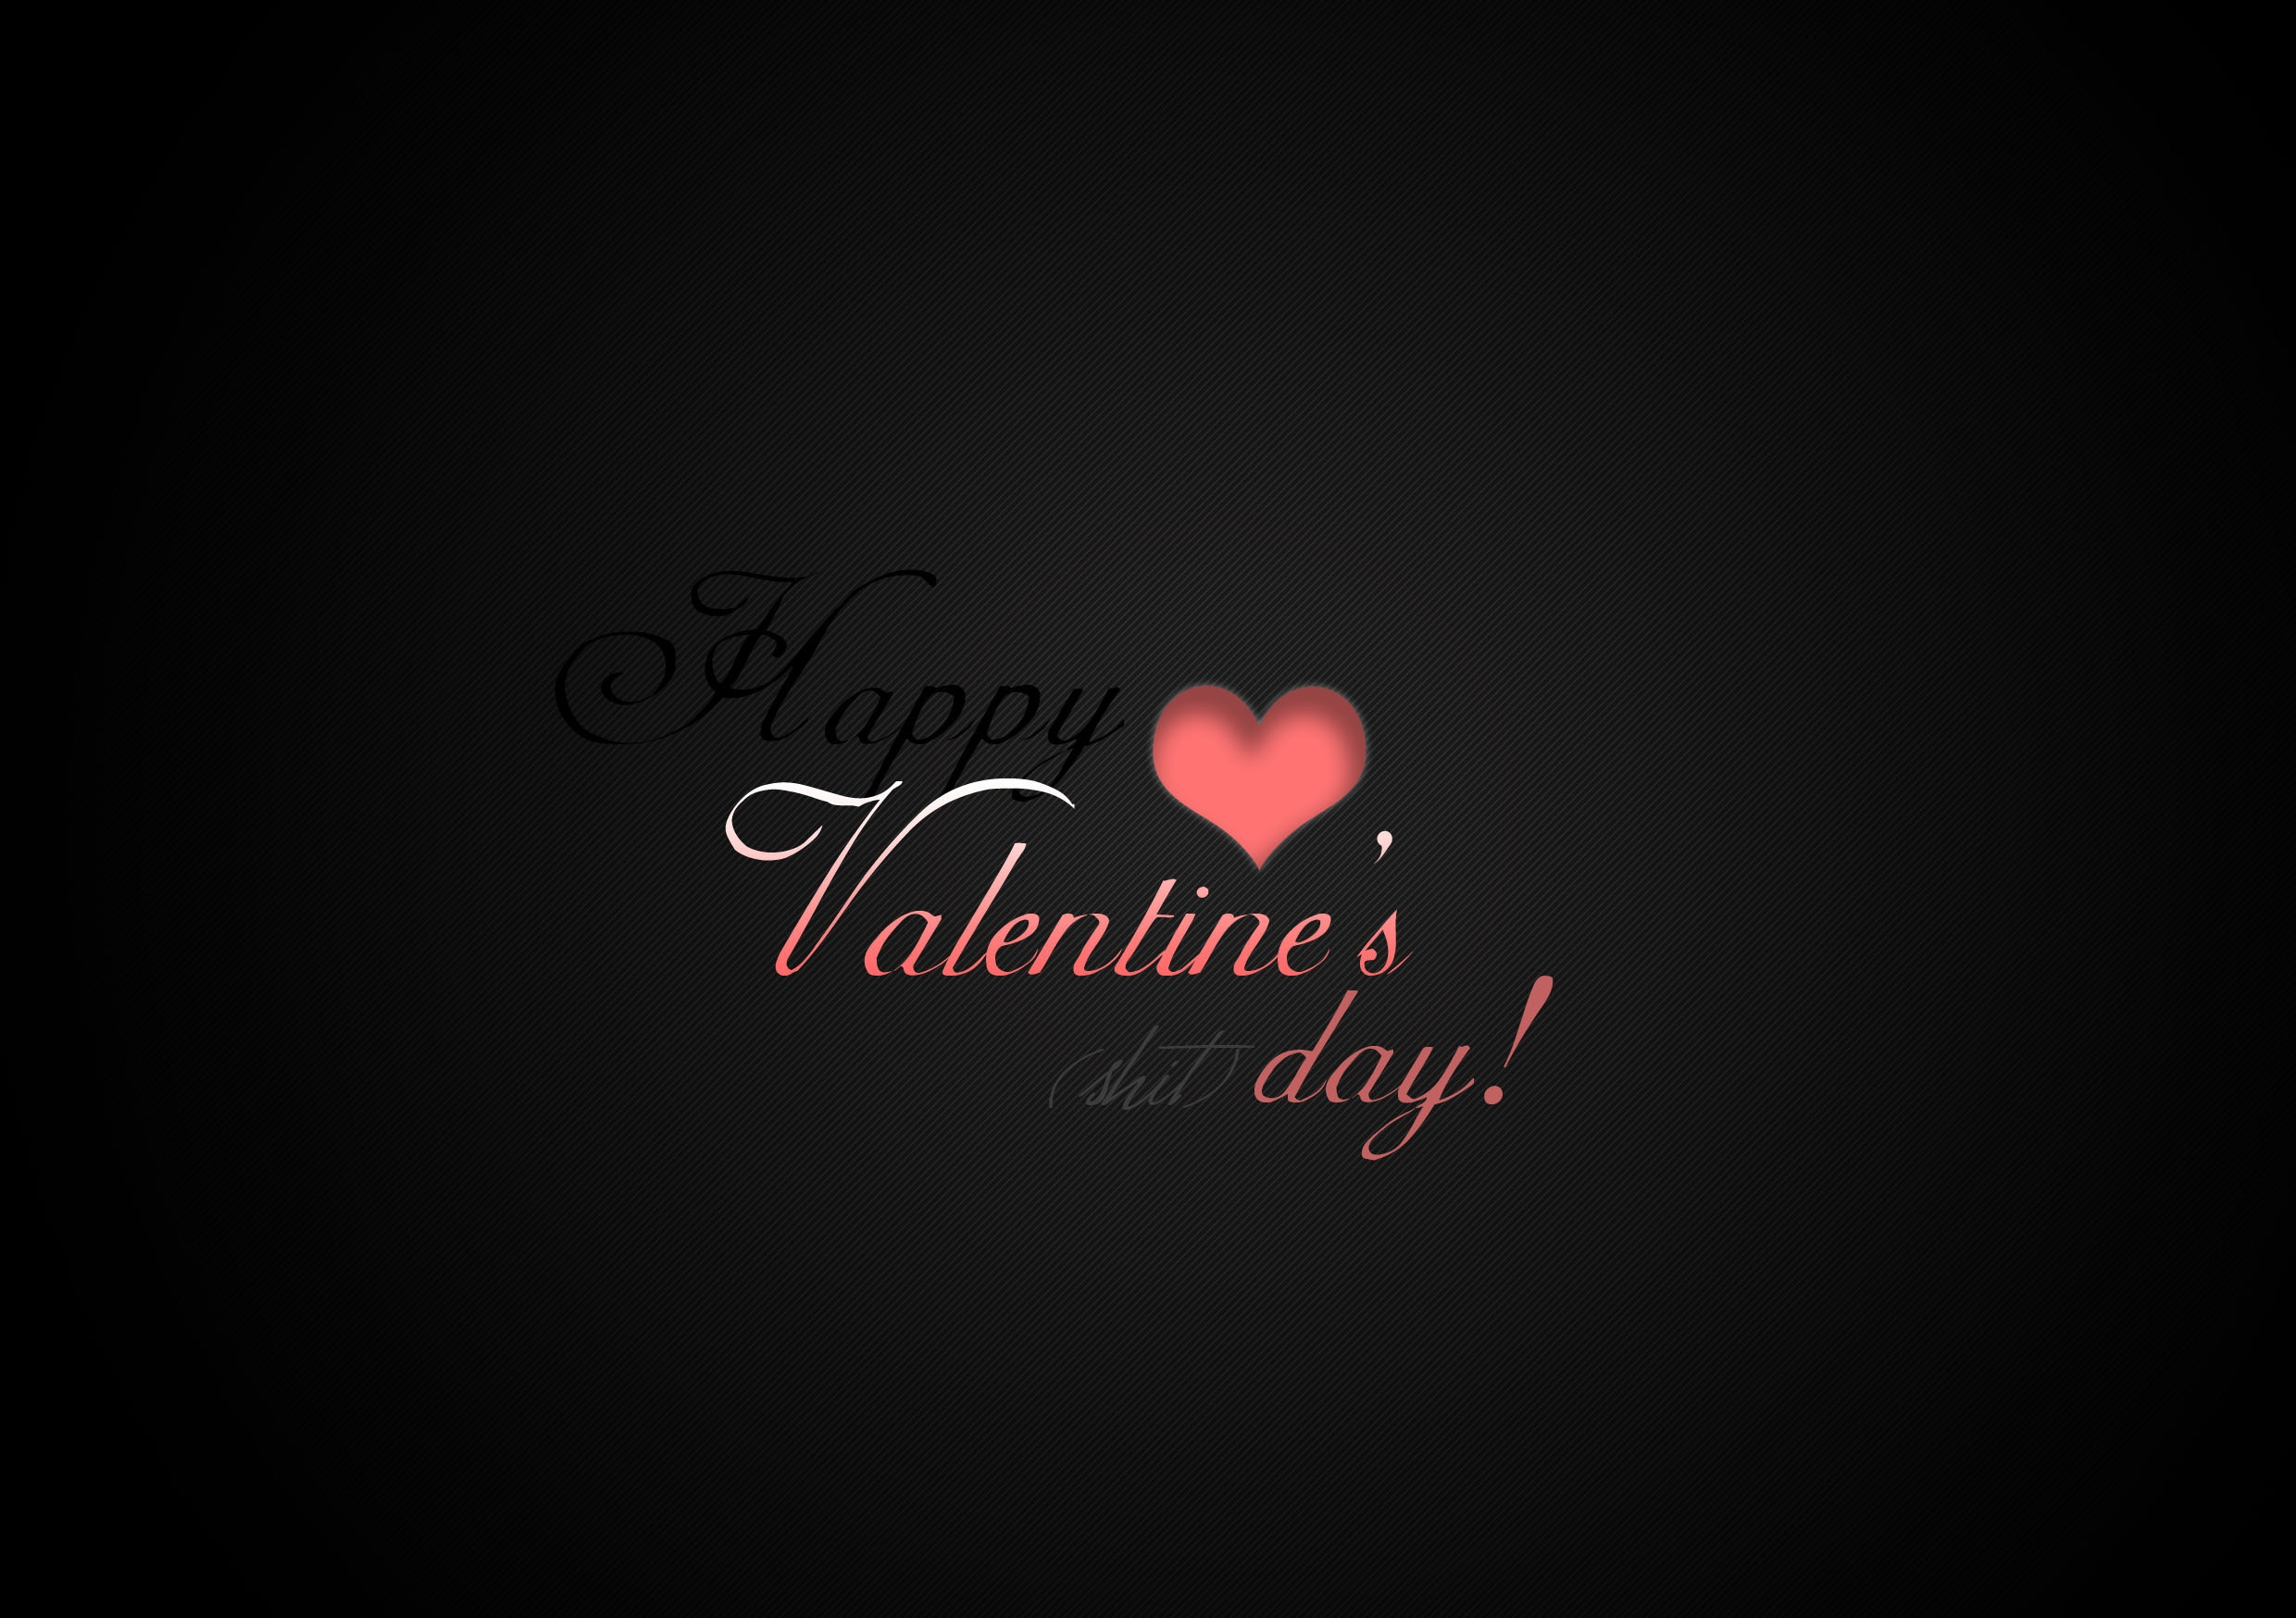 celebrate-love-not-just-one-day-but-every-day-valentines-day